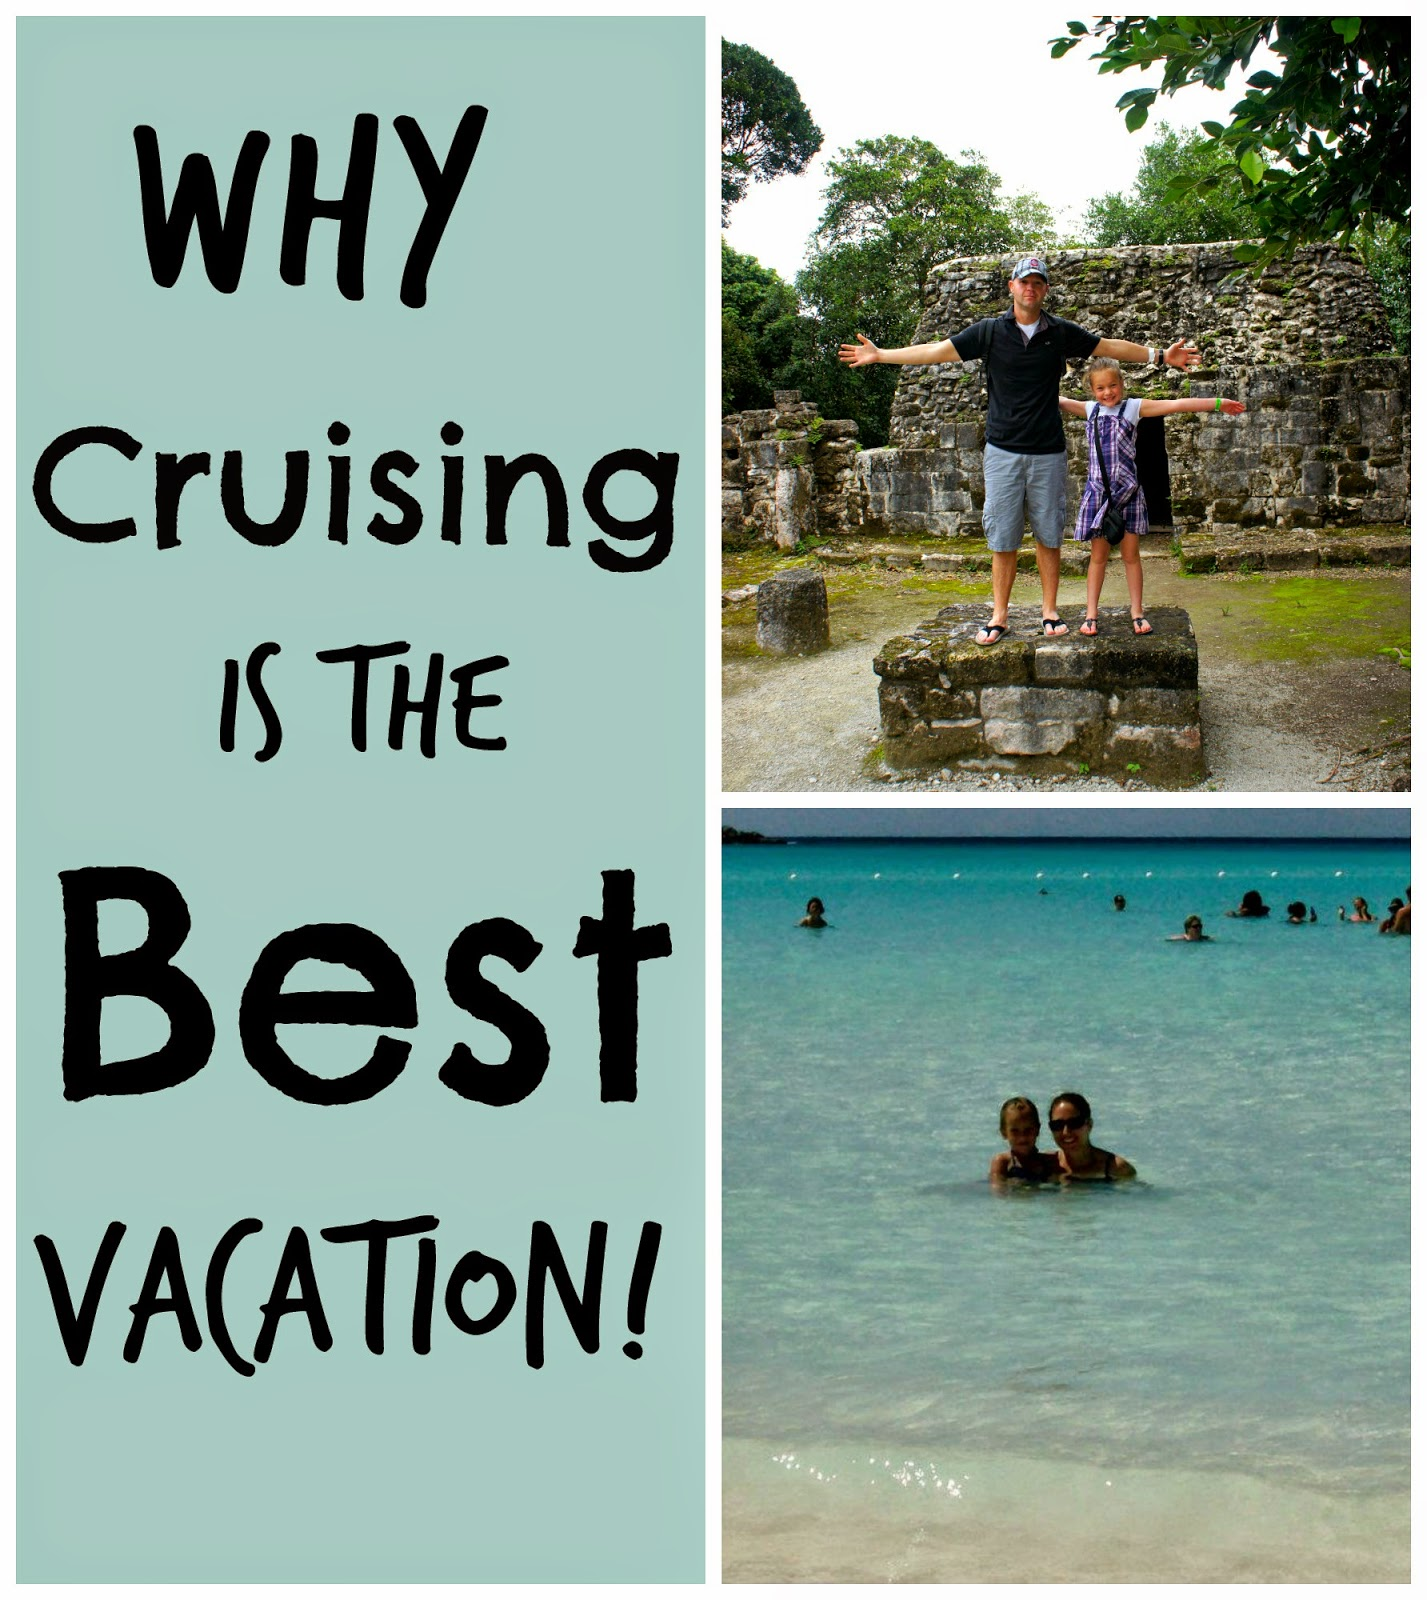 Why cruising is the best vacation for everyone!